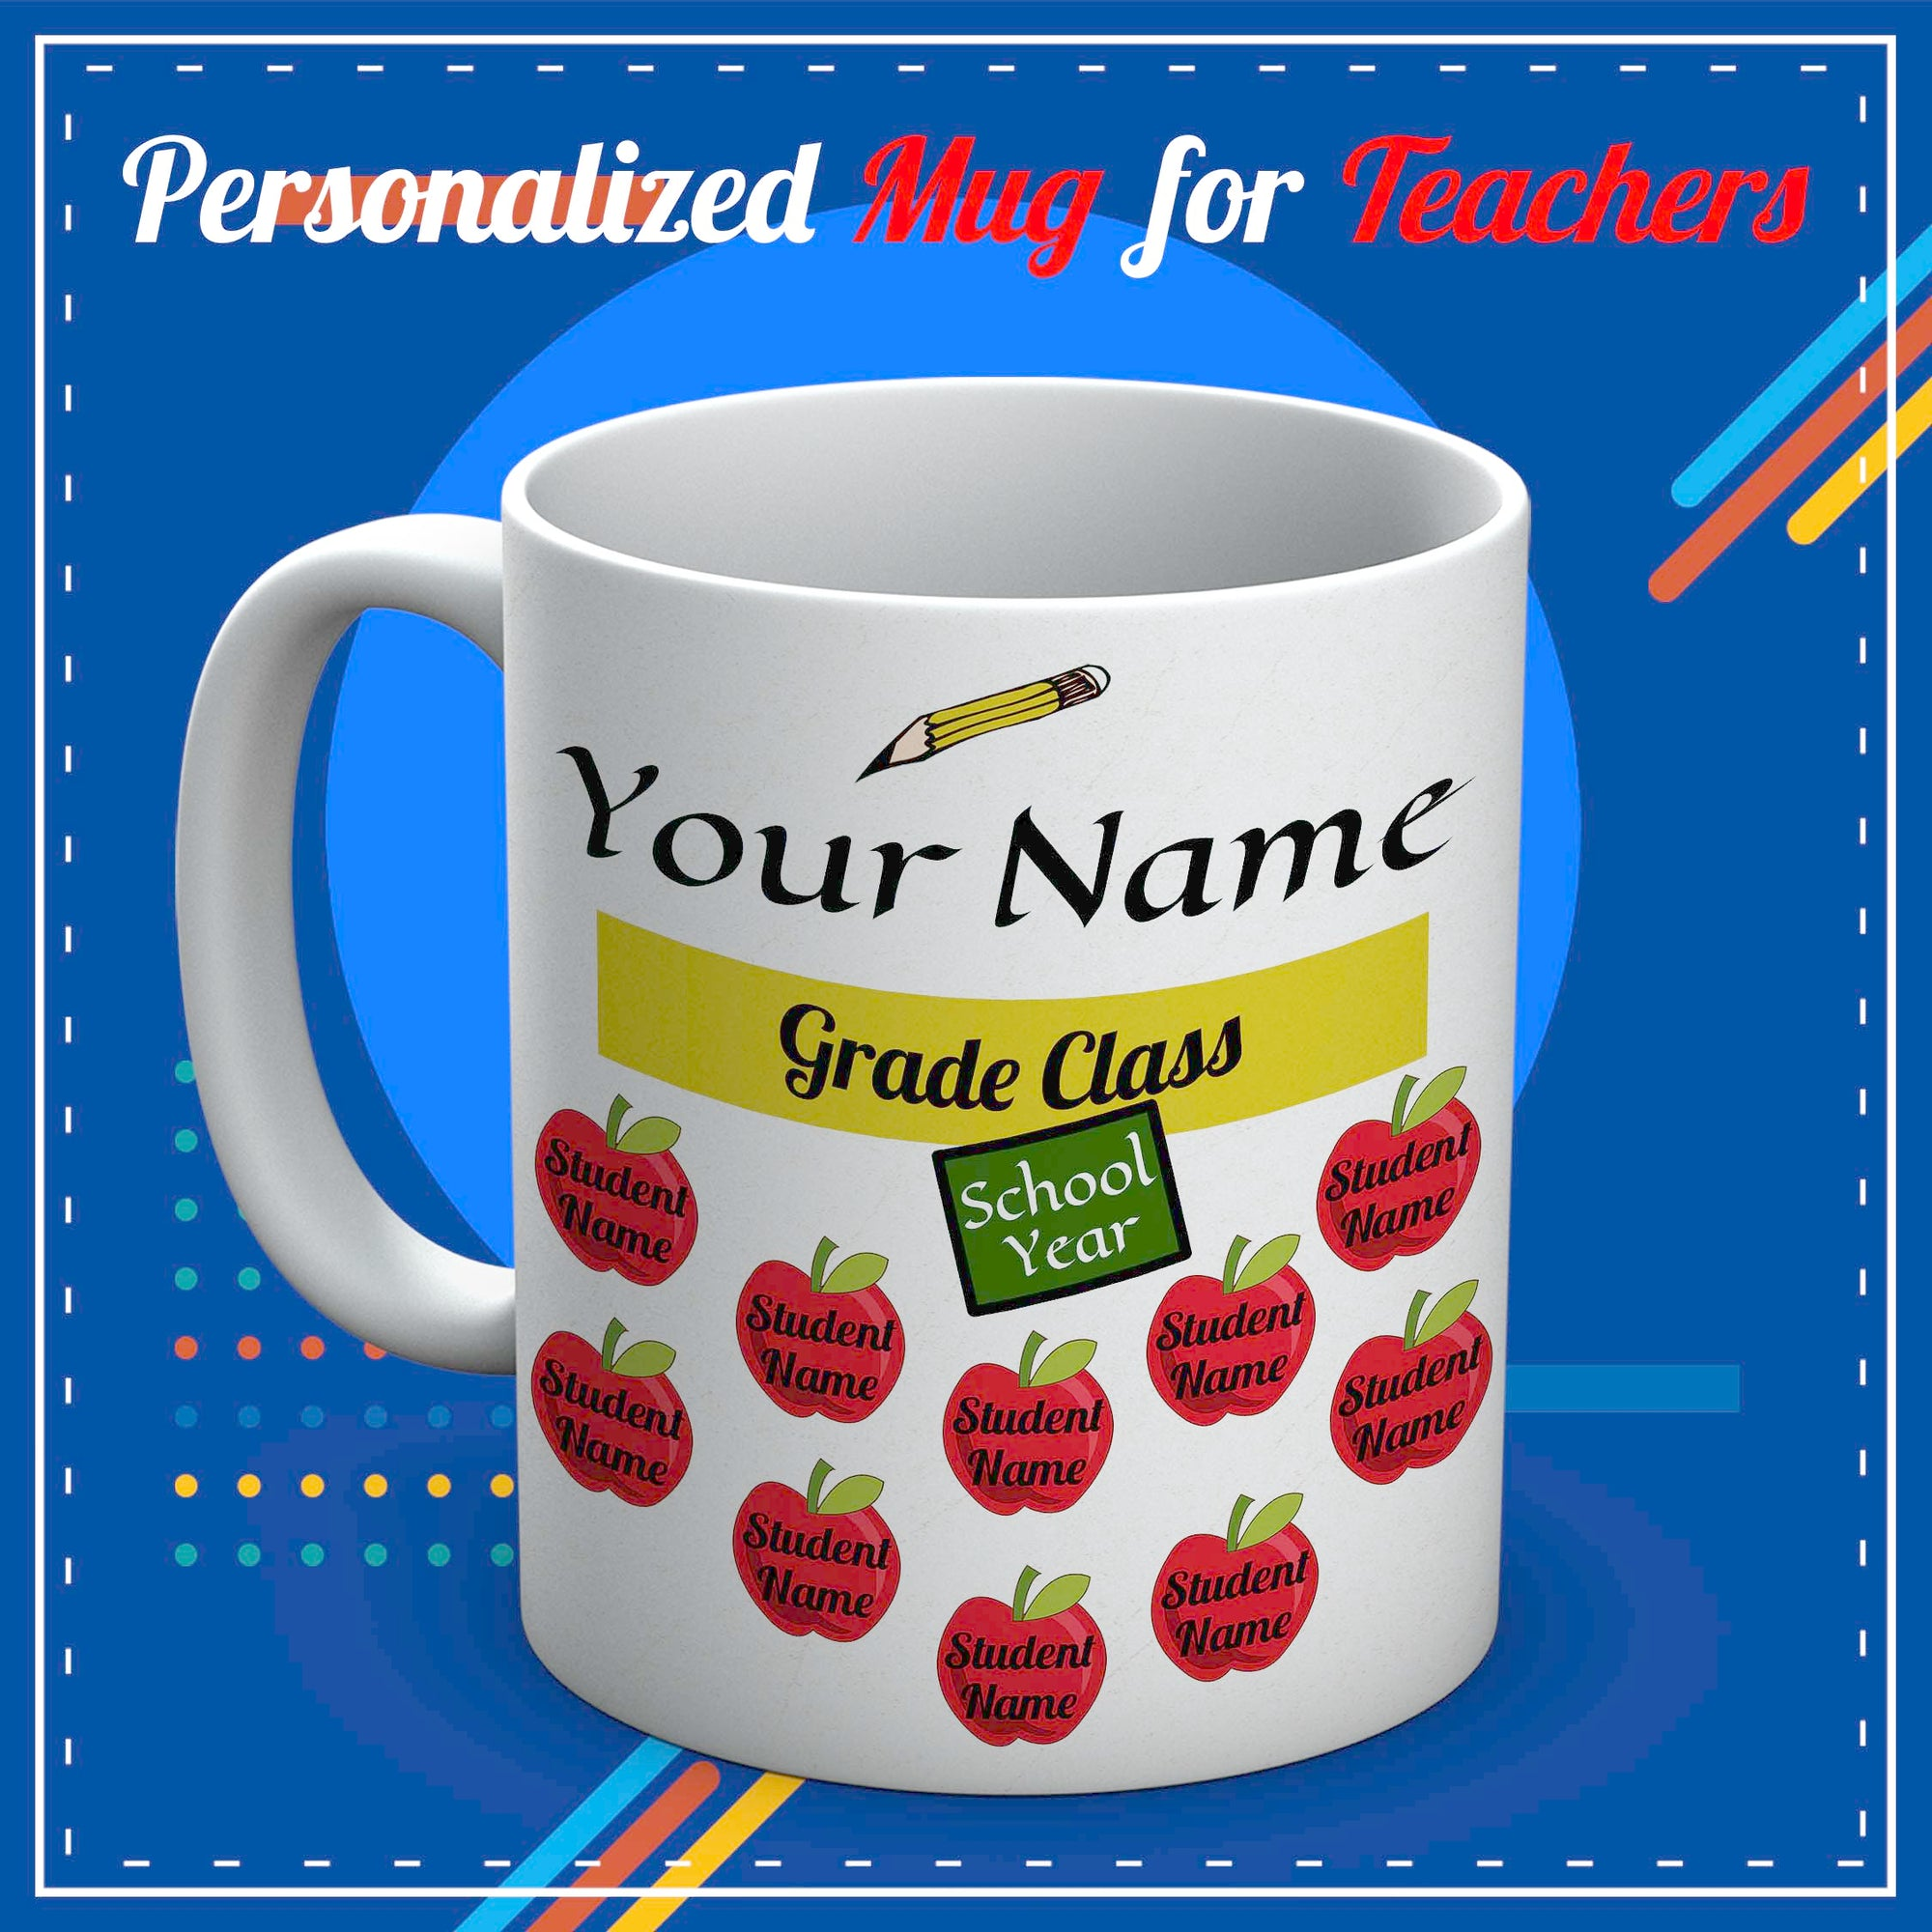 PERSONALIZED mug for teachers - TEACHER NAME+GRADE+SCHOOL YEAR+STUDENTS NAME